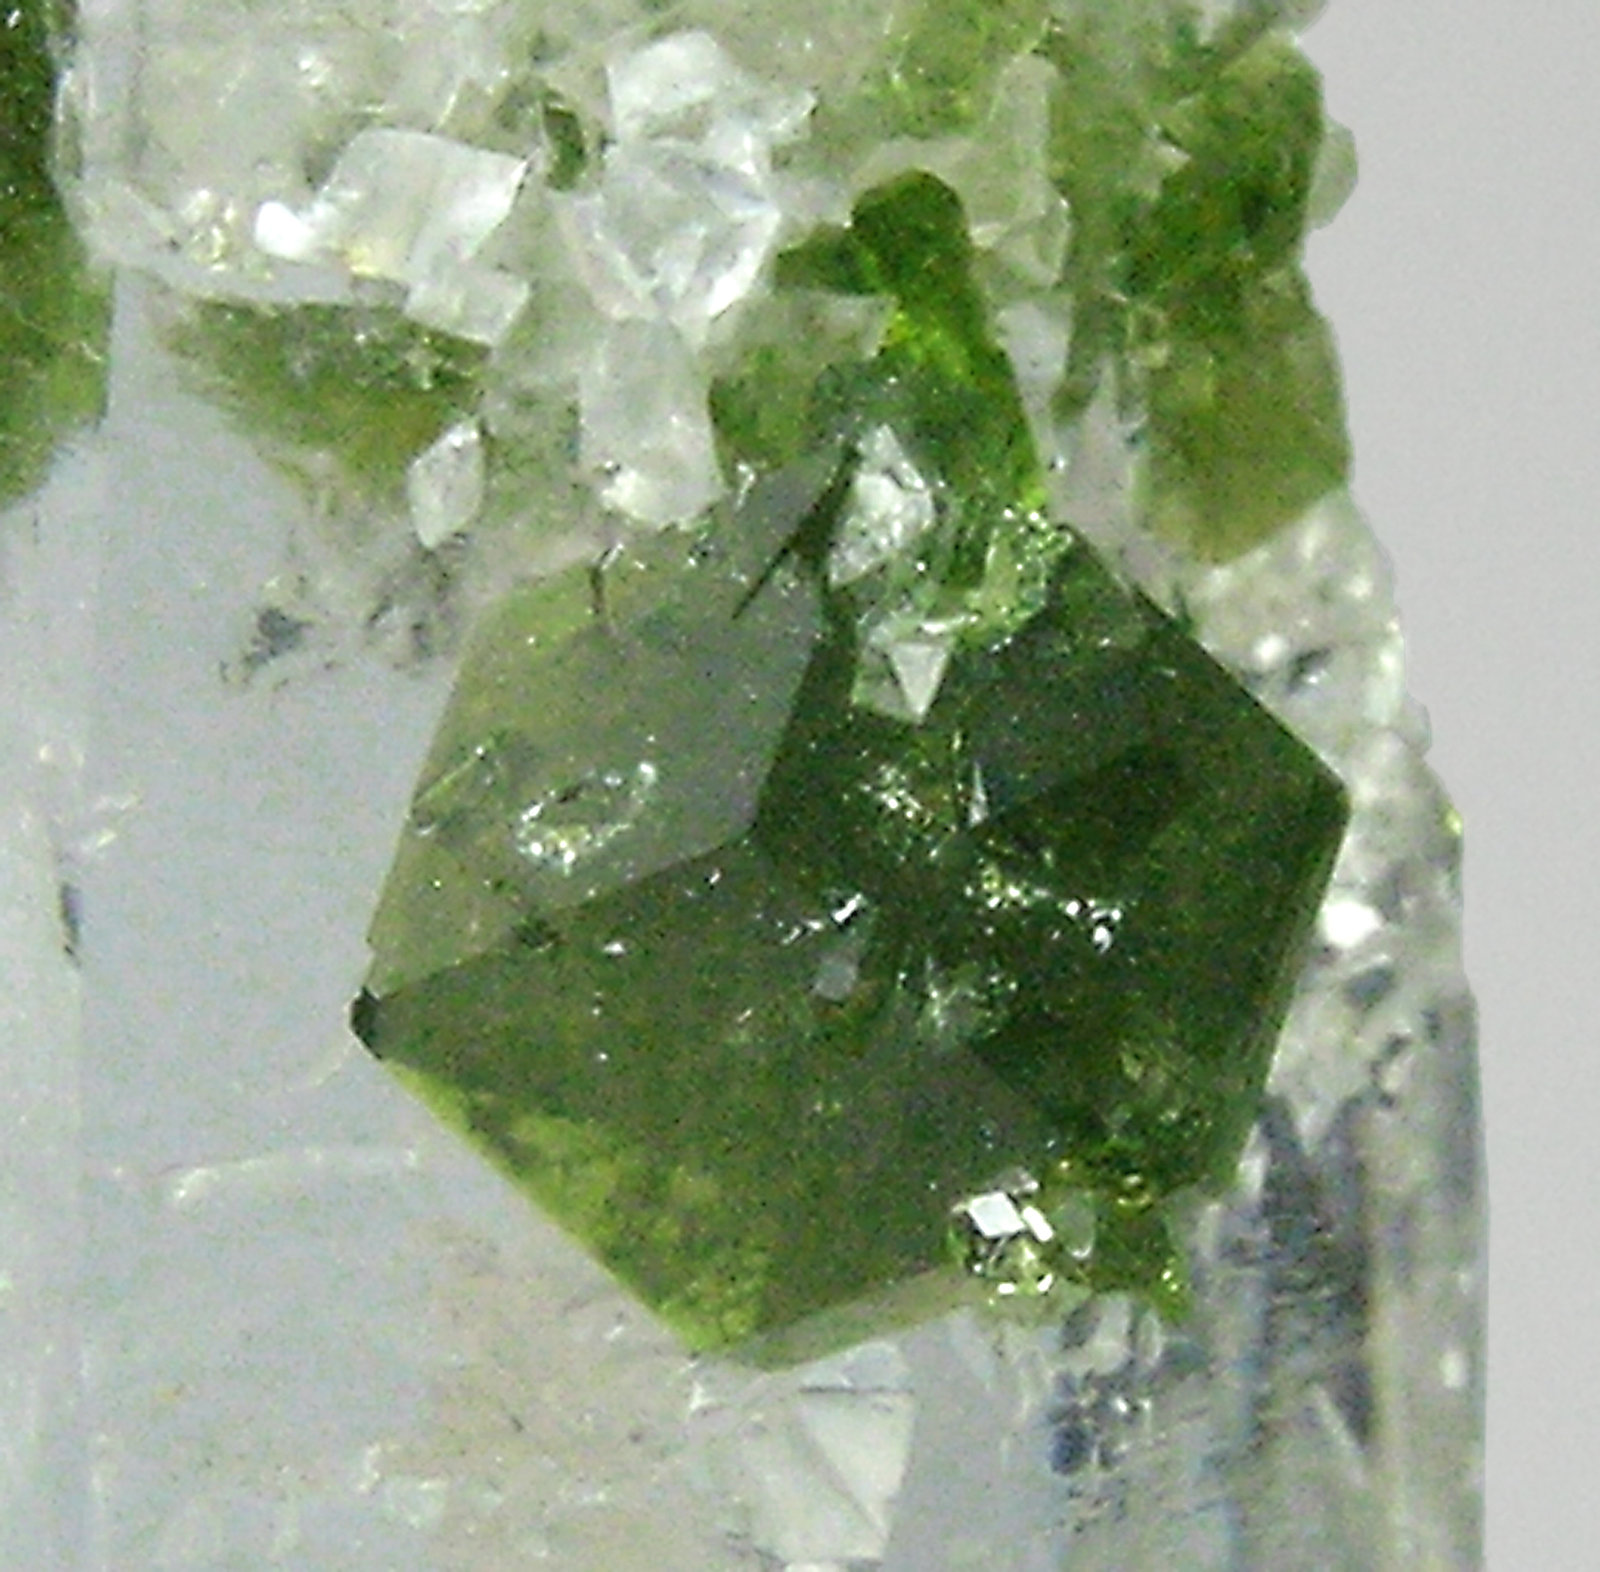 specimens/s_imagesQ5/Quartz-GF64Q5d2.jpg